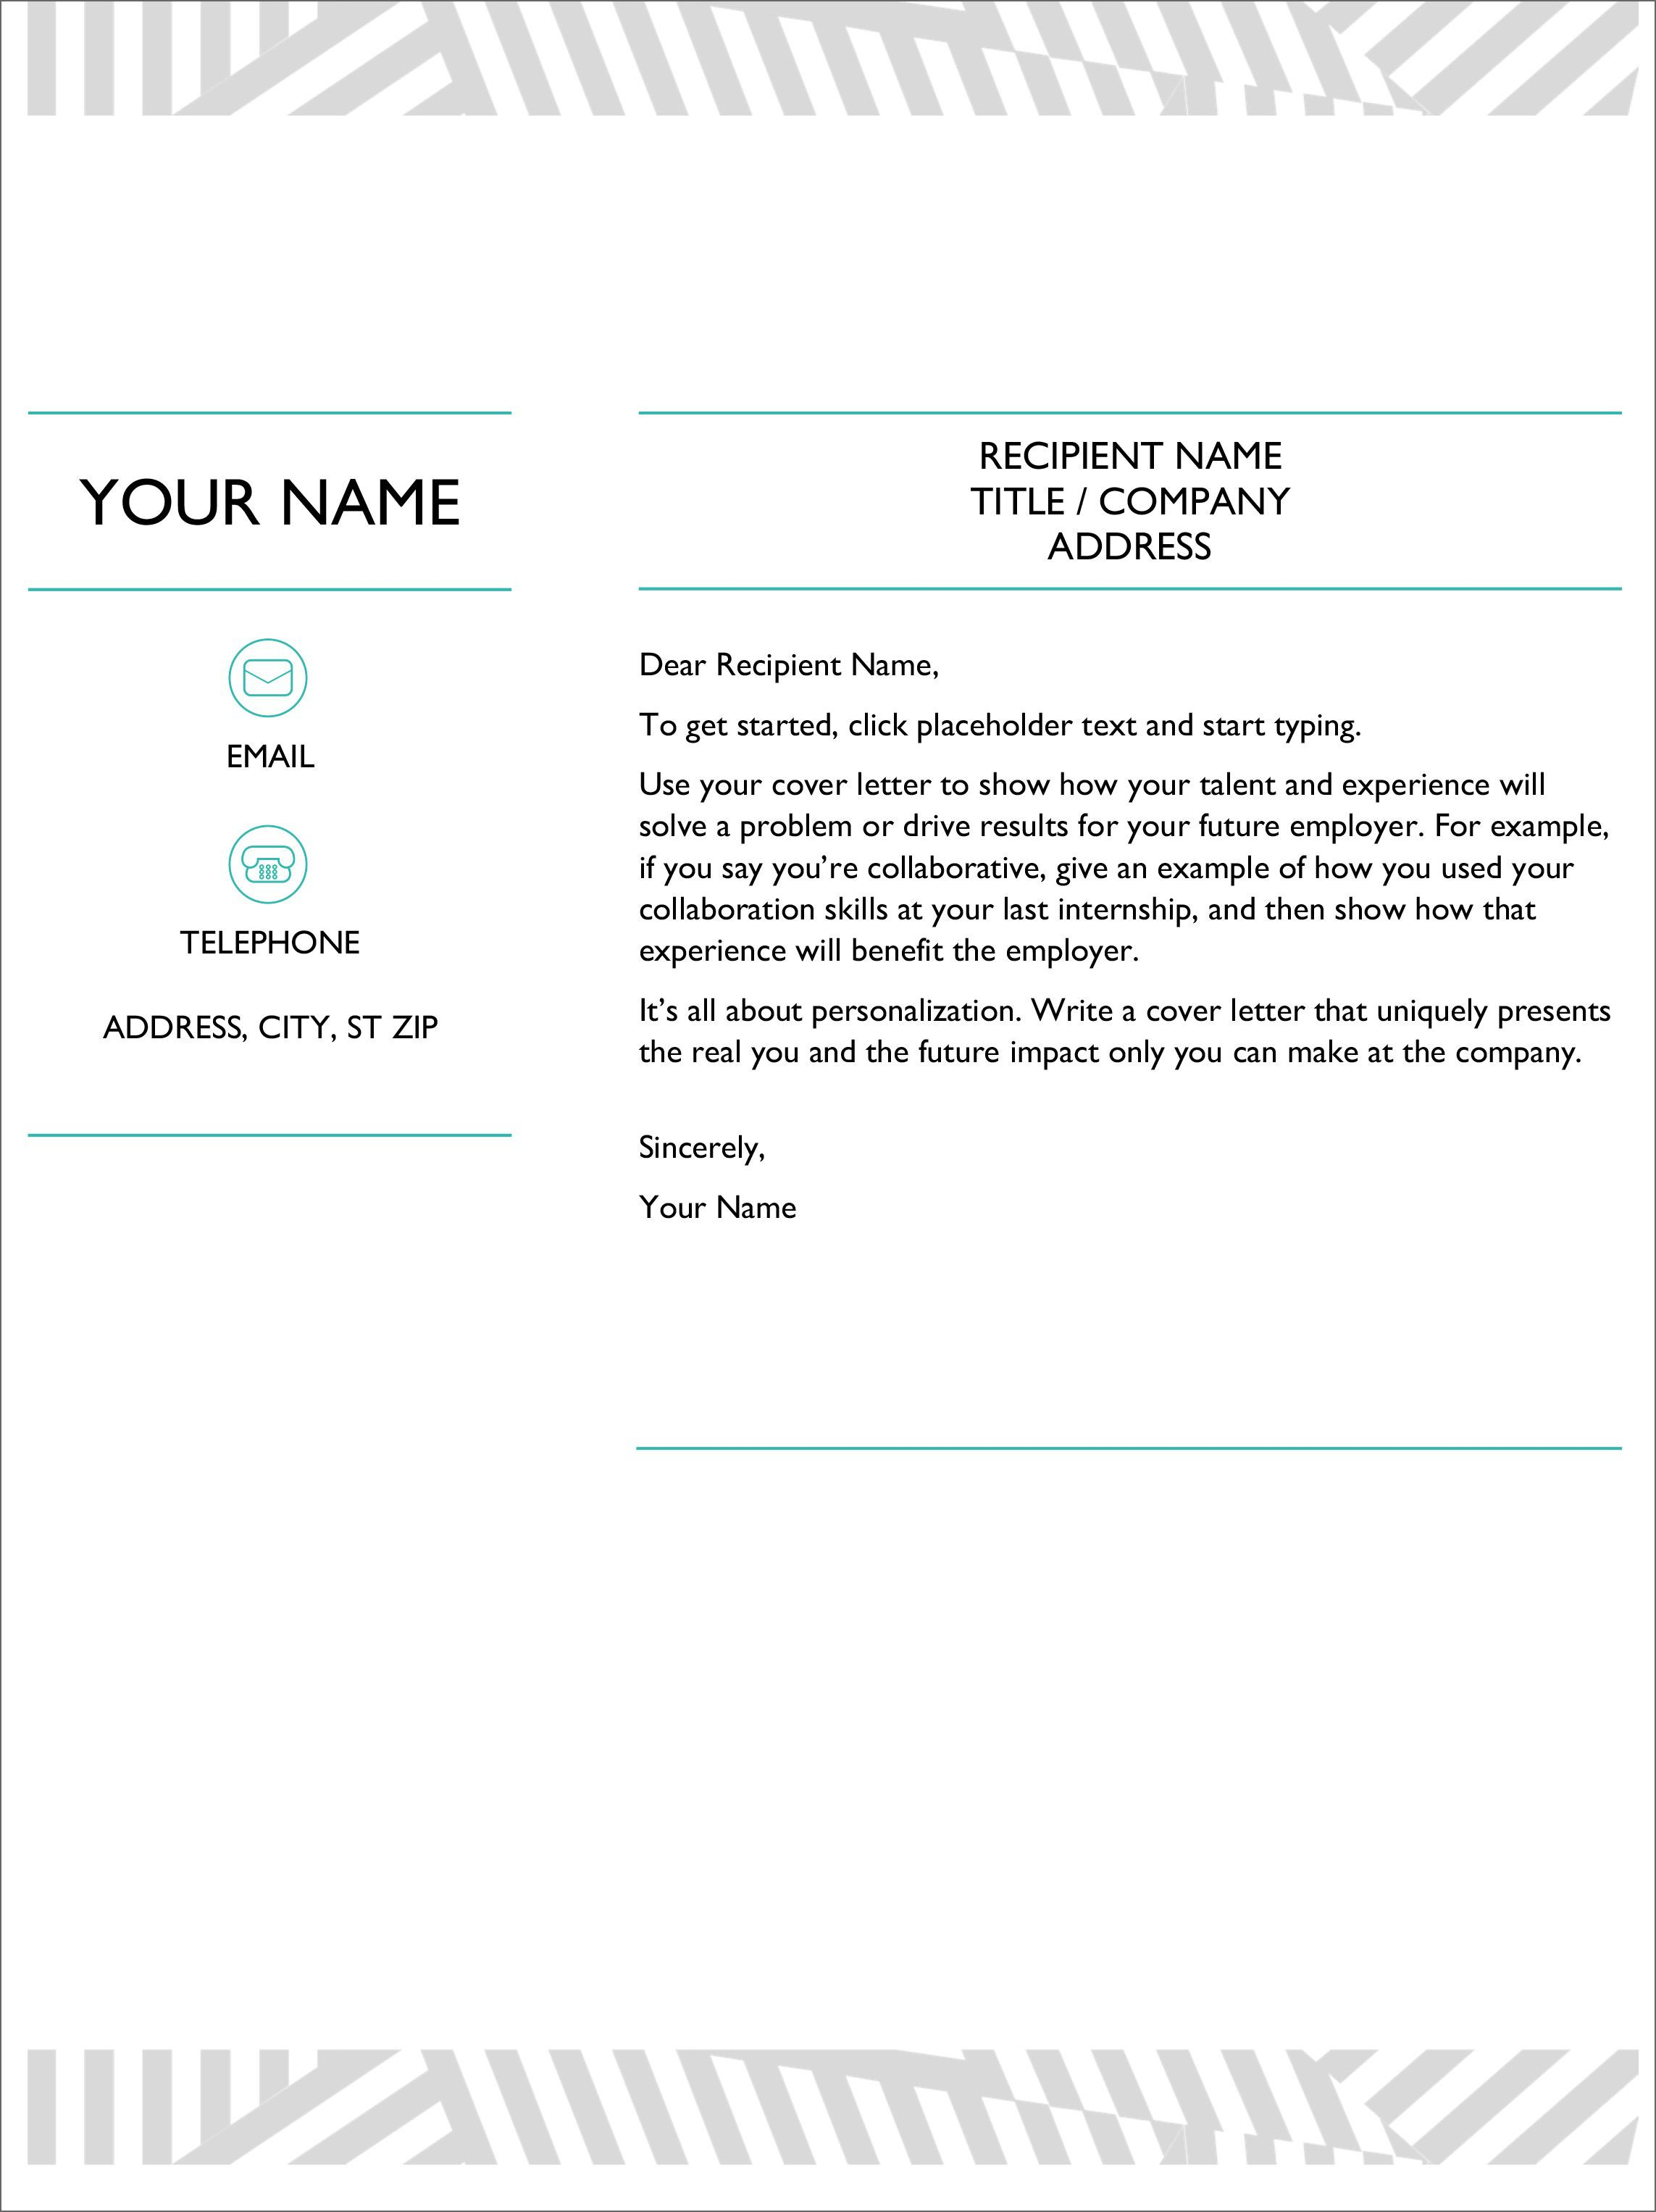 005 Awful Letter Template M Word Highest Clarity  Fax Cover Microsoft Busines AuthorizationFull